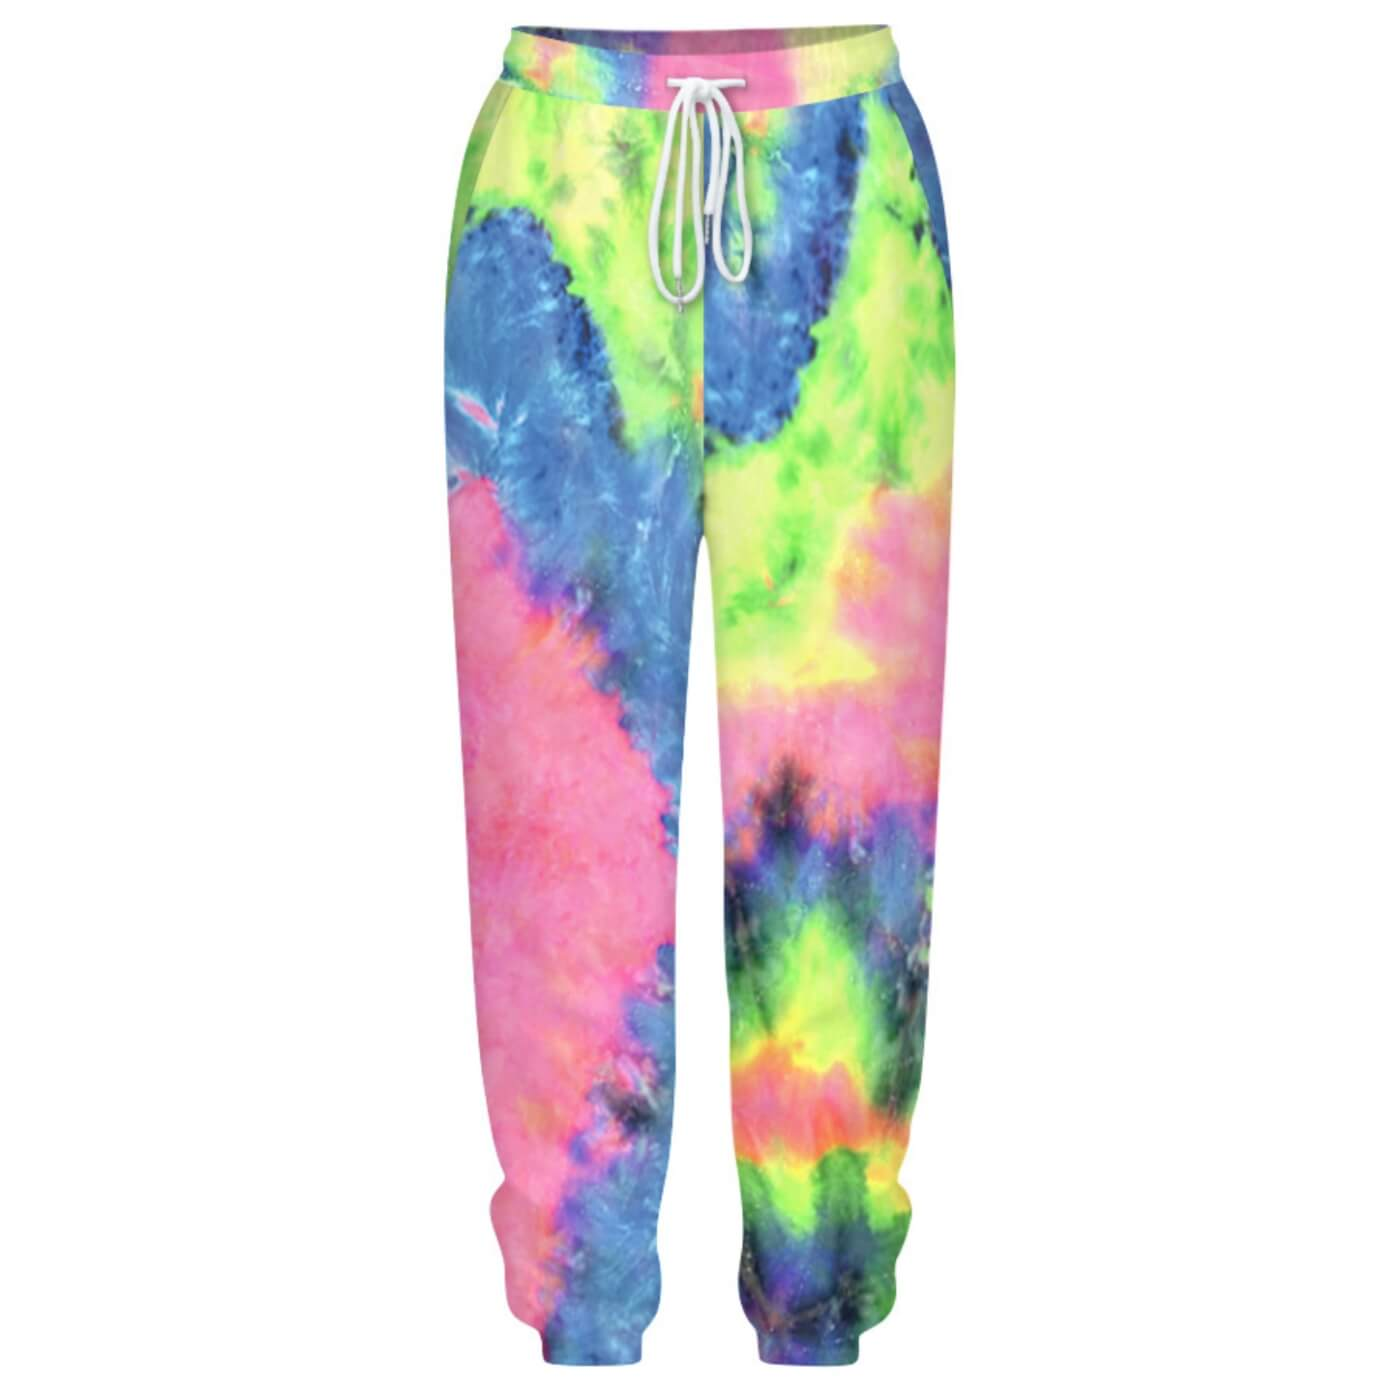 Hummingbird Tie Dye Print Drawstring Joggers - Pastel A features loose fit with elastic waistband and cuffed hem, an adjustable drawstring and side pockets. Perfect for any daily activities from workout to casual lounging. Digital printing technology keeps tie dye patterns intact after wear and tear. Complete the look with a sweatshirt, sports bra, crop top, crop tank and more because they go with almost anything in your closet!